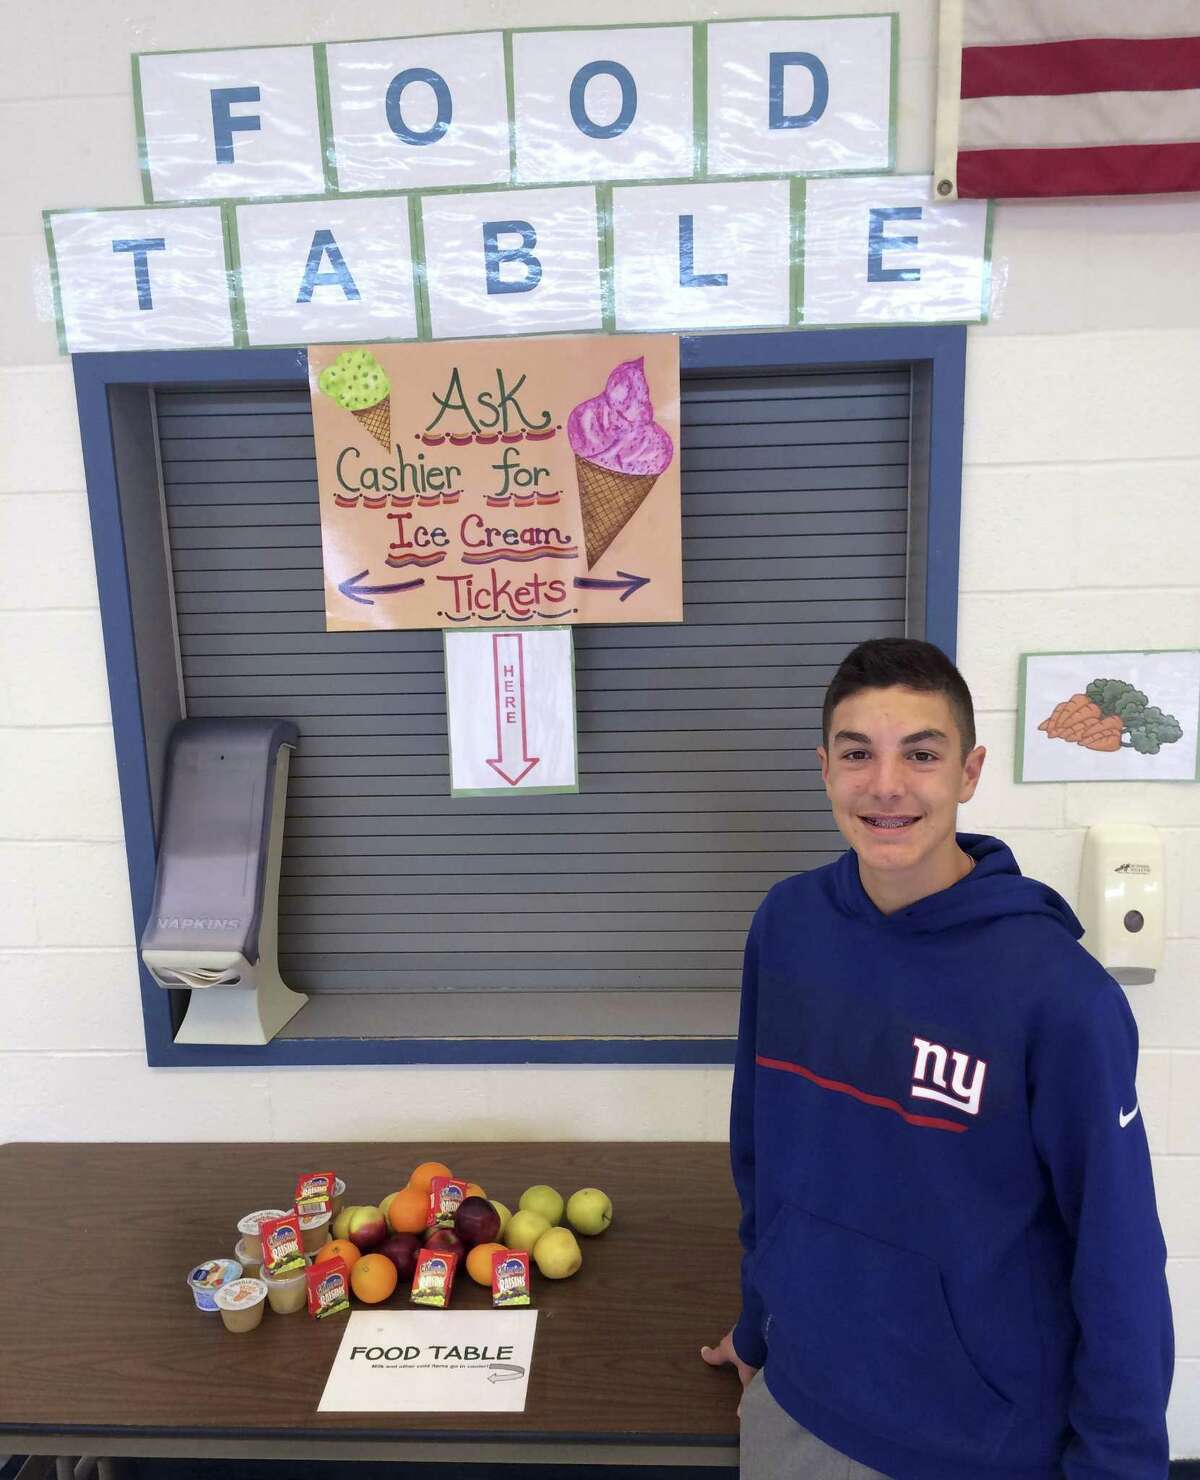 In this Tuesday, Feb. 28, 2017 photo, Nick Iannone, 14, poses in front of the share table he launched as a school project at James H. Moran Middle School in Wallingford, Conn. School officials there are criticizing a state policy change that restricts sharing of some uneaten food items. (AP Photo/Michael Melia)